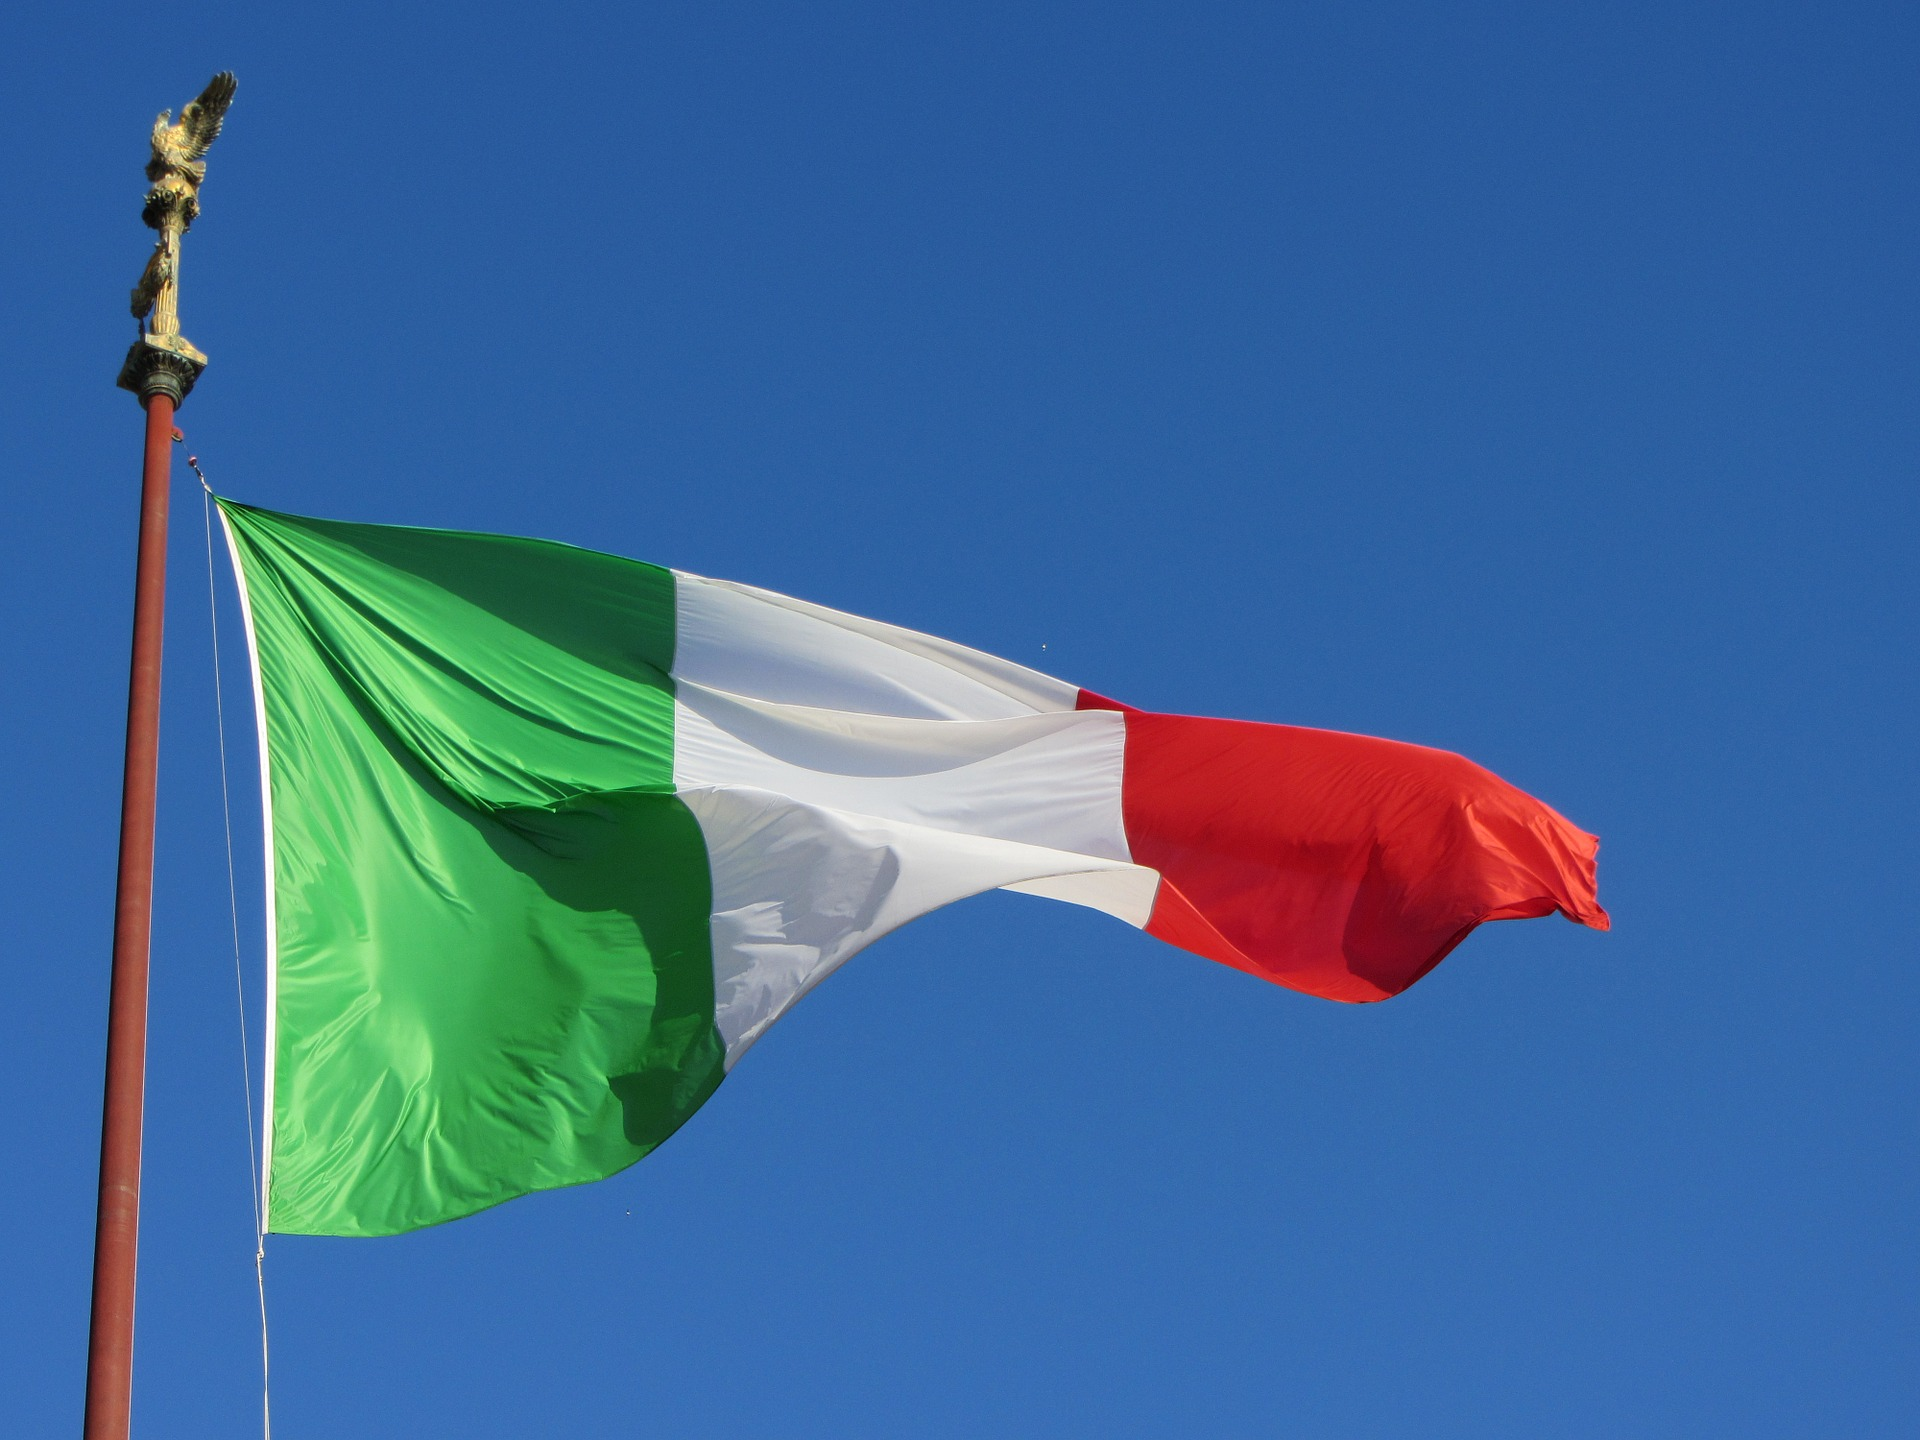 The Italian flag blowing in the wind